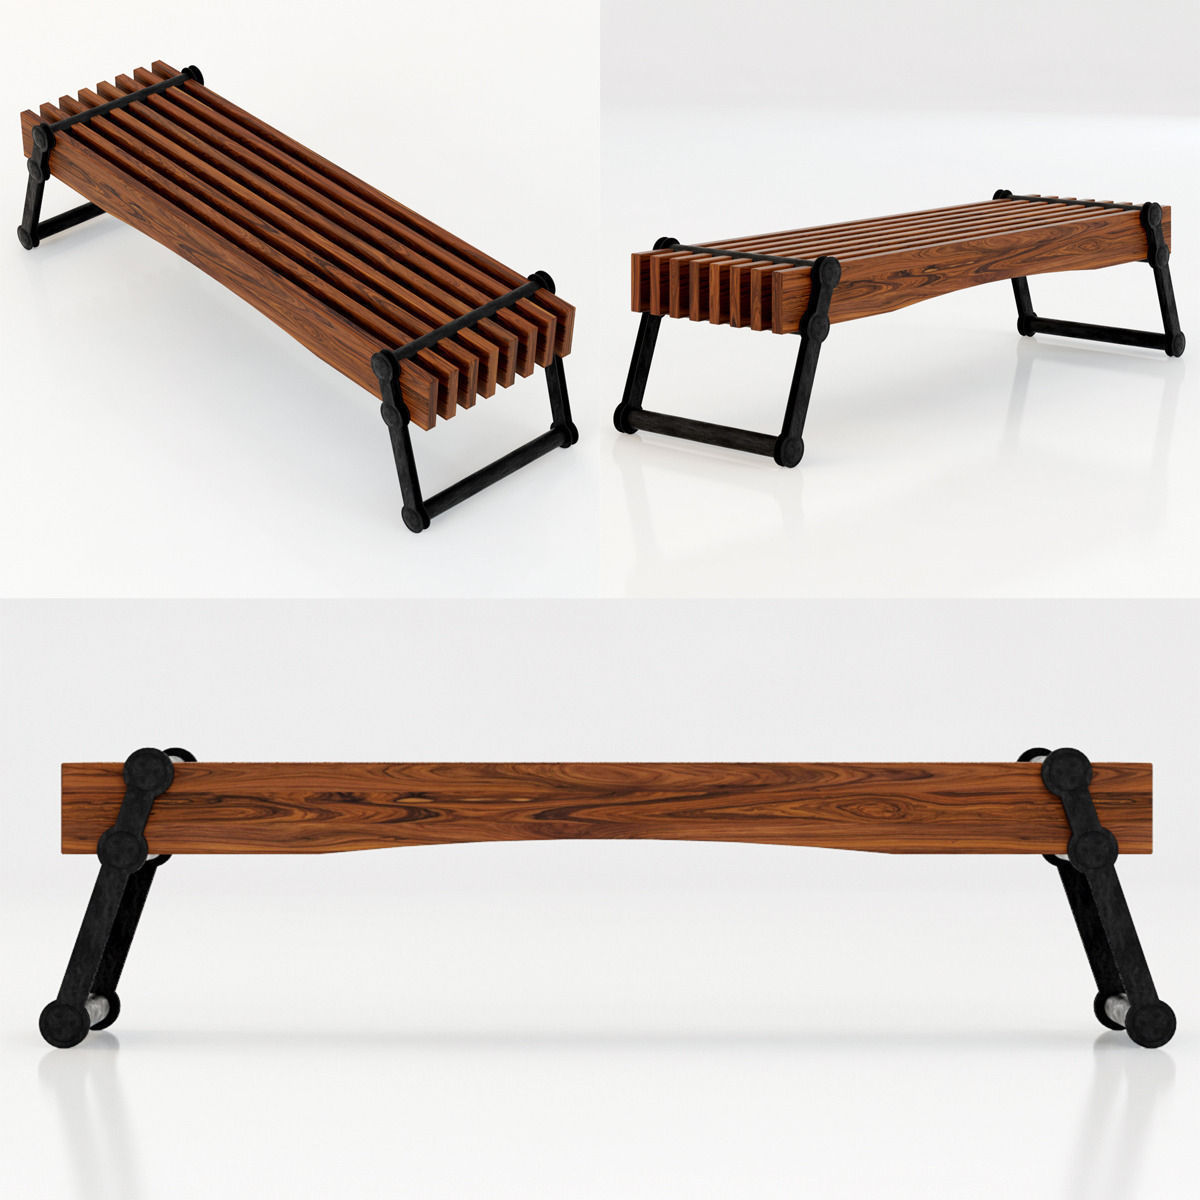 Narrow Table Stunning Narrow Coffee Table Ideas For Small  : restoration hardware kinetic narrow coffee table 3d model max from buildhouse.biz size 1200 x 1200 jpeg 123kB